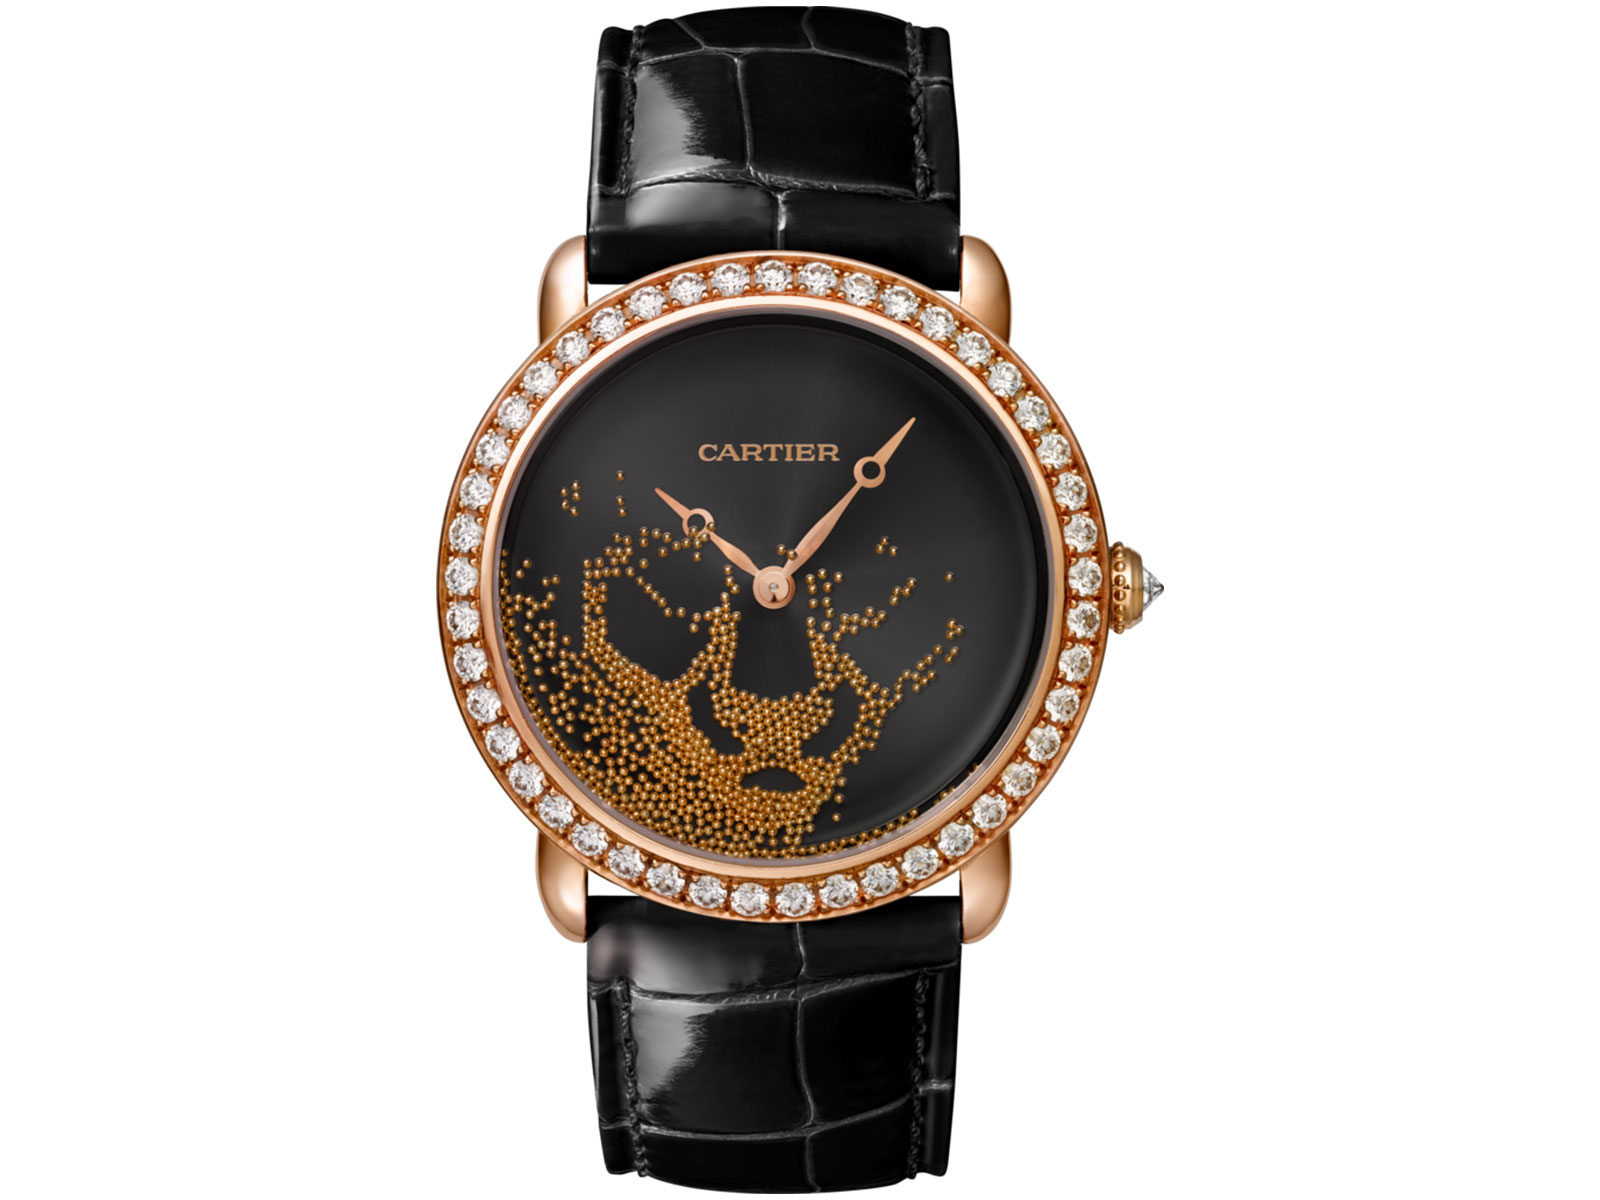 HP-01259-Cartier-Panthere-Collection-Sihh2018-Black-2.jpg